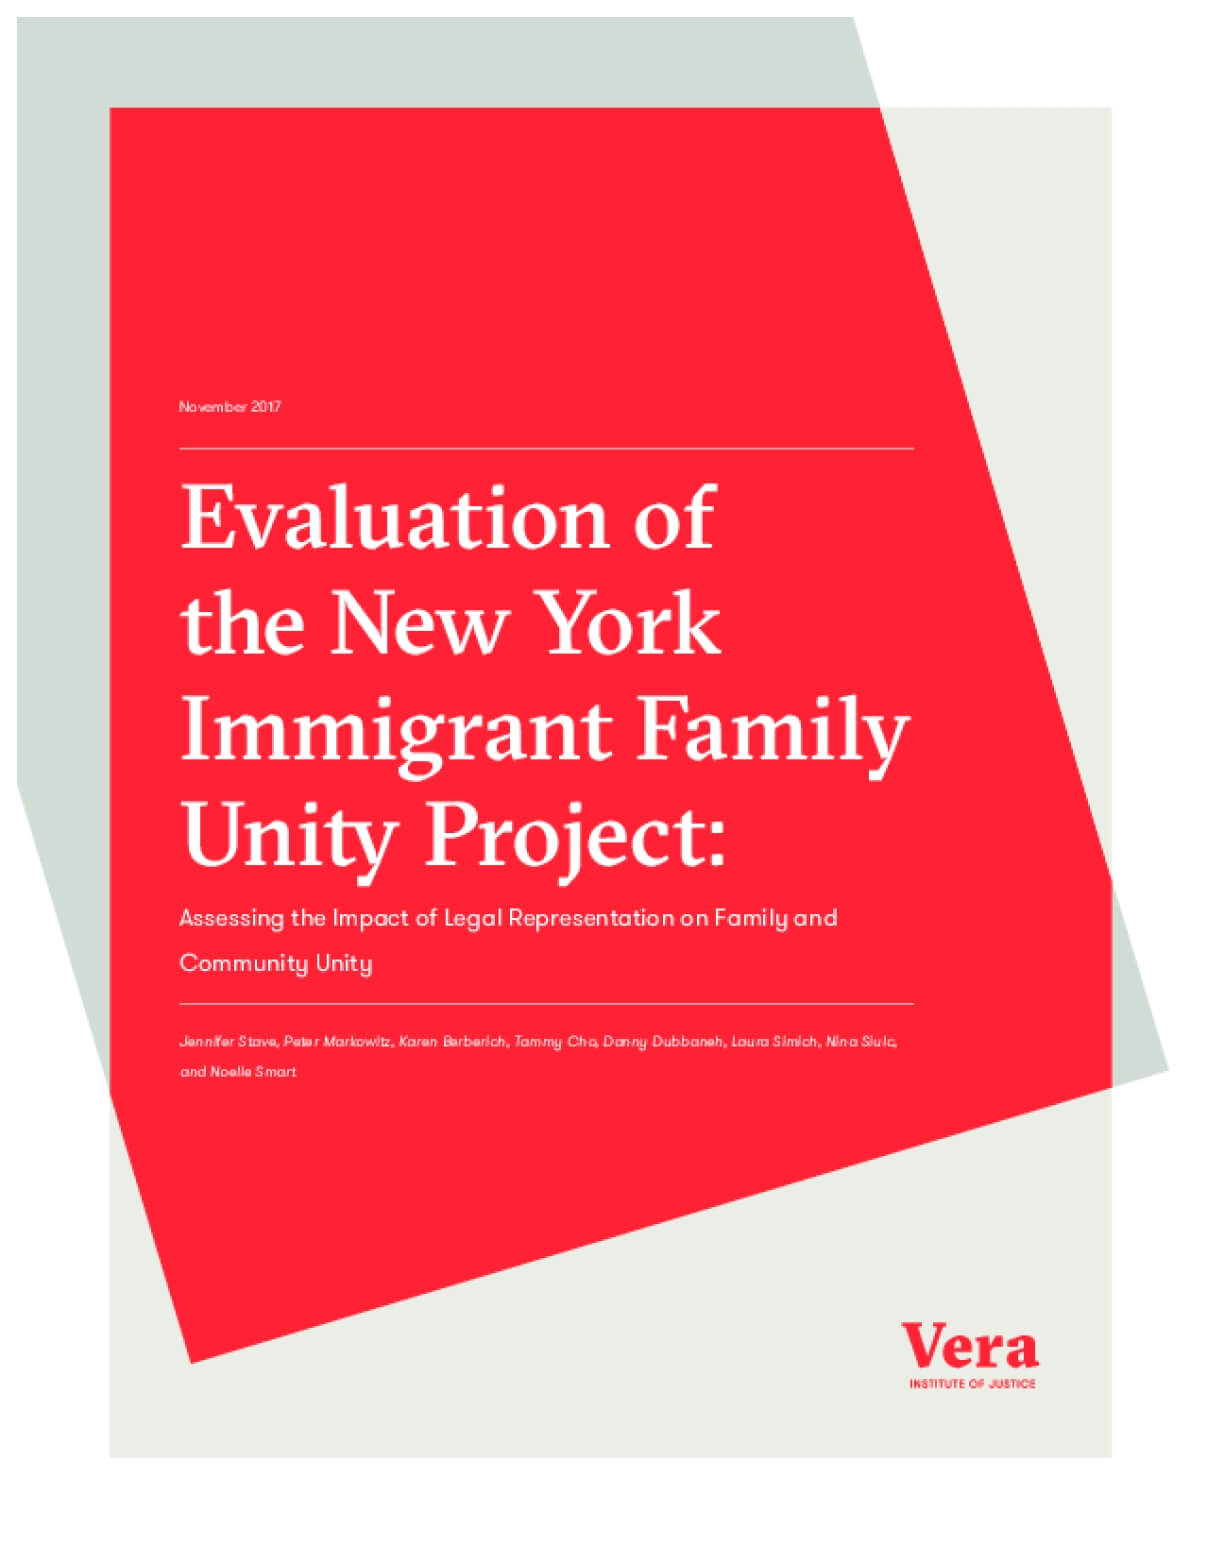 Evaluation of the New York Immigrant Family Unity Project: Assessing the Impact of Legal Representation on Family and Community Unity